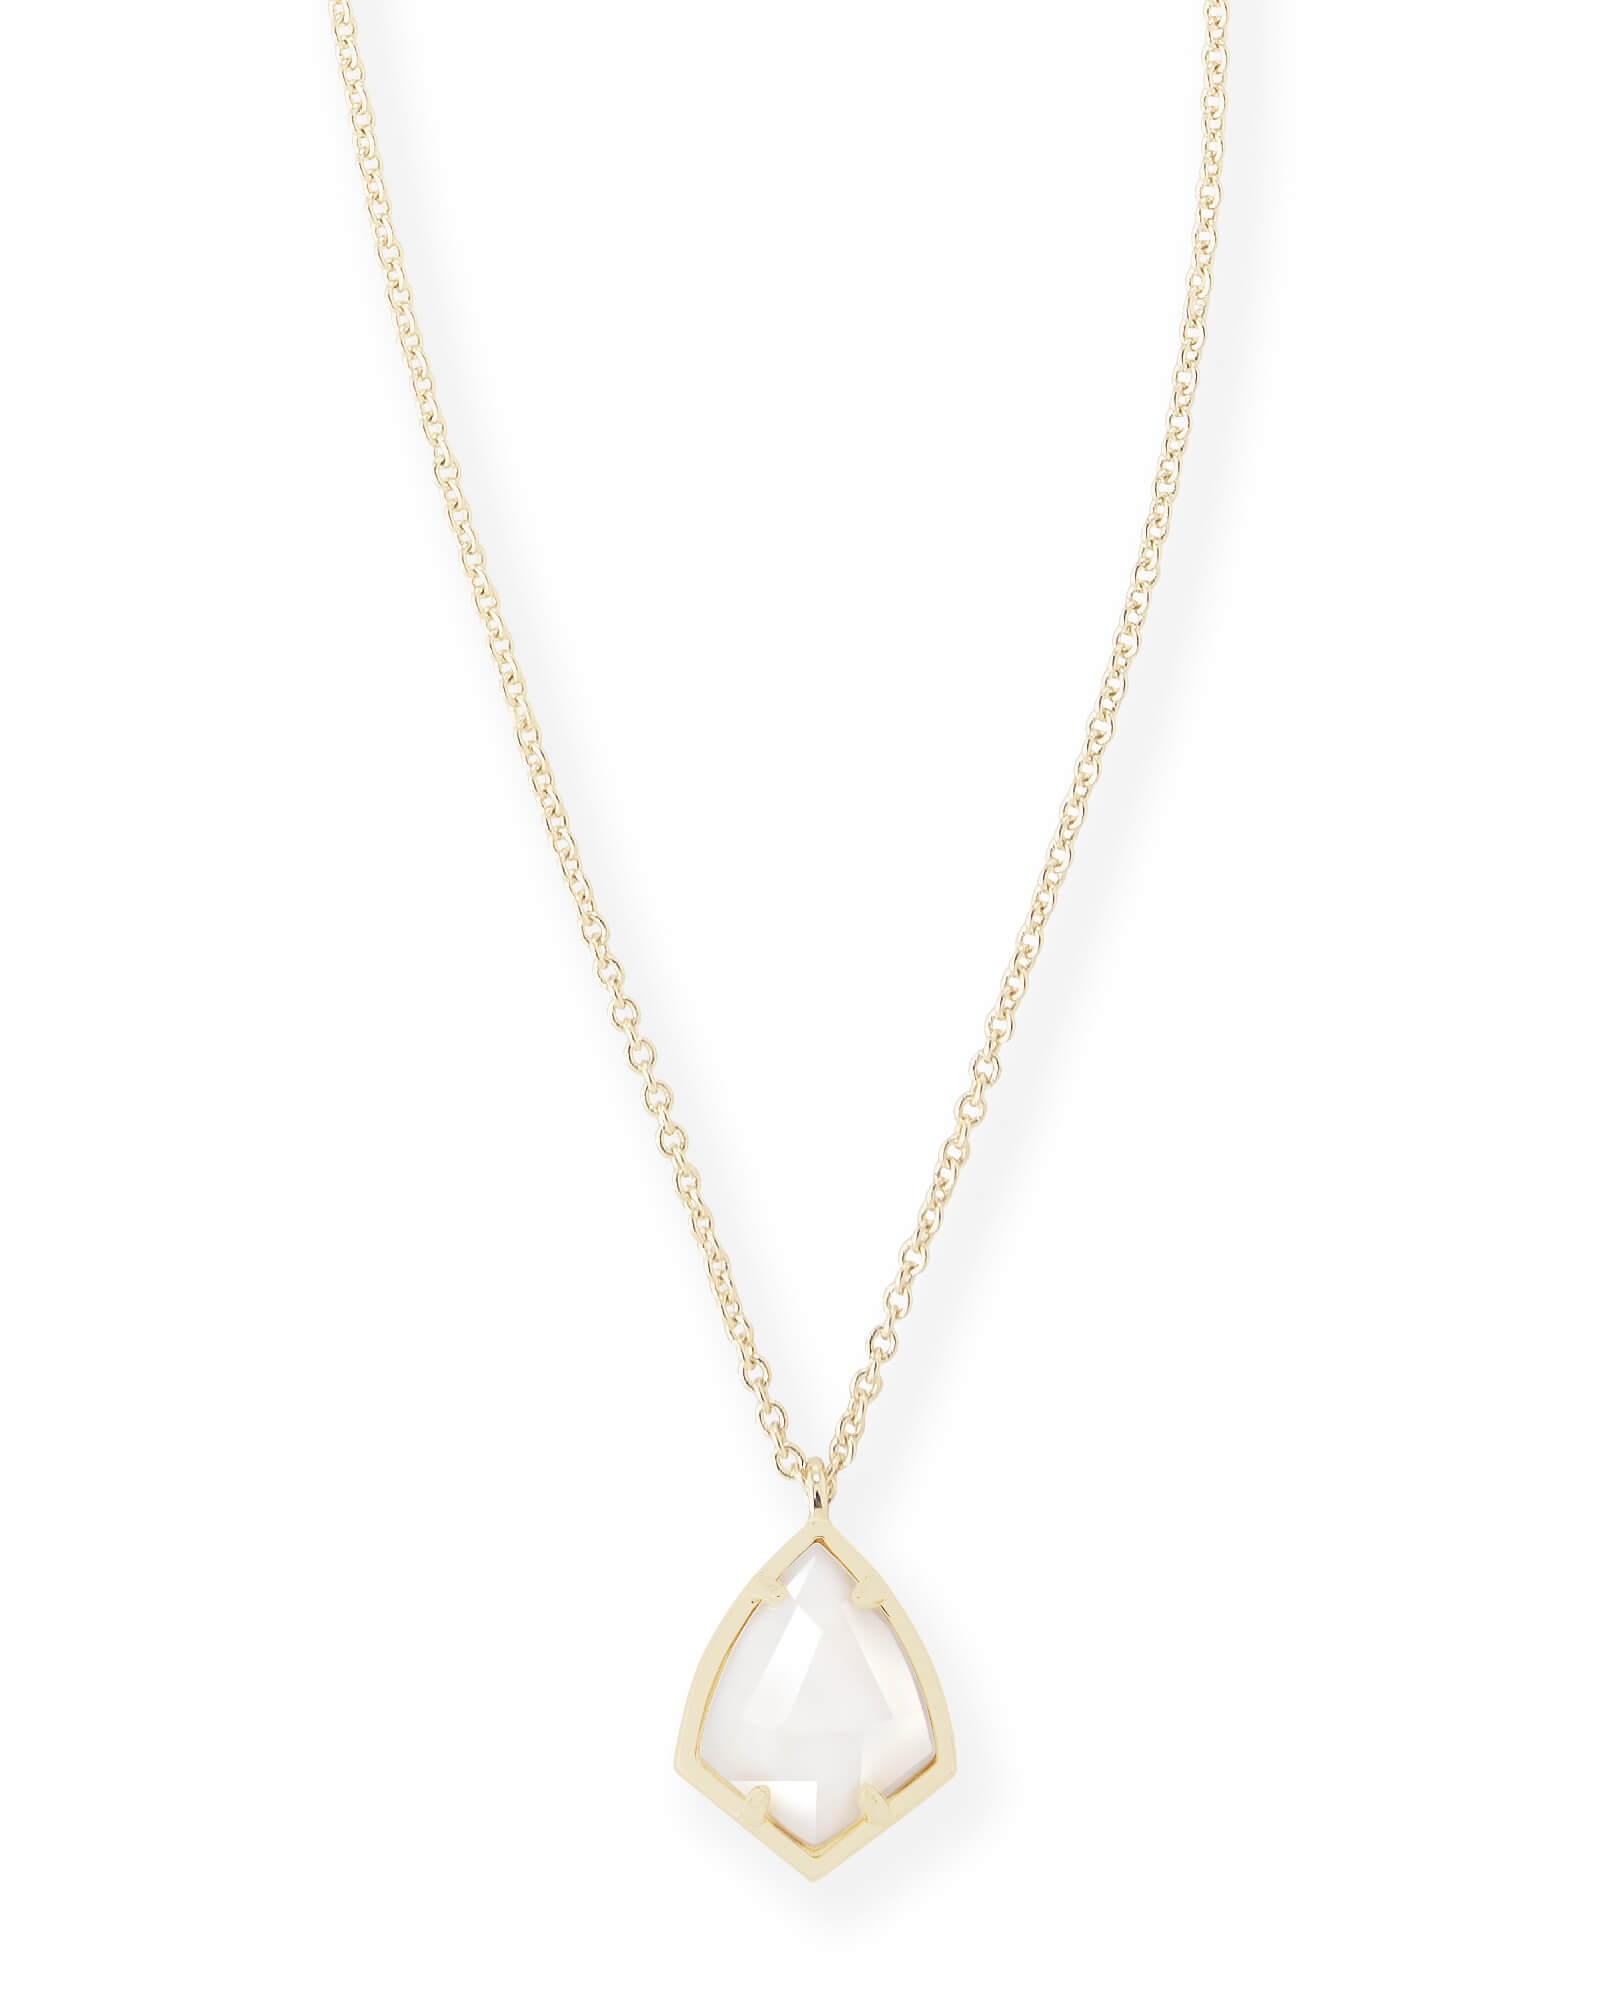 1600x2000 Cory Gold Pendant Necklace In White Pearl Kendra Scott